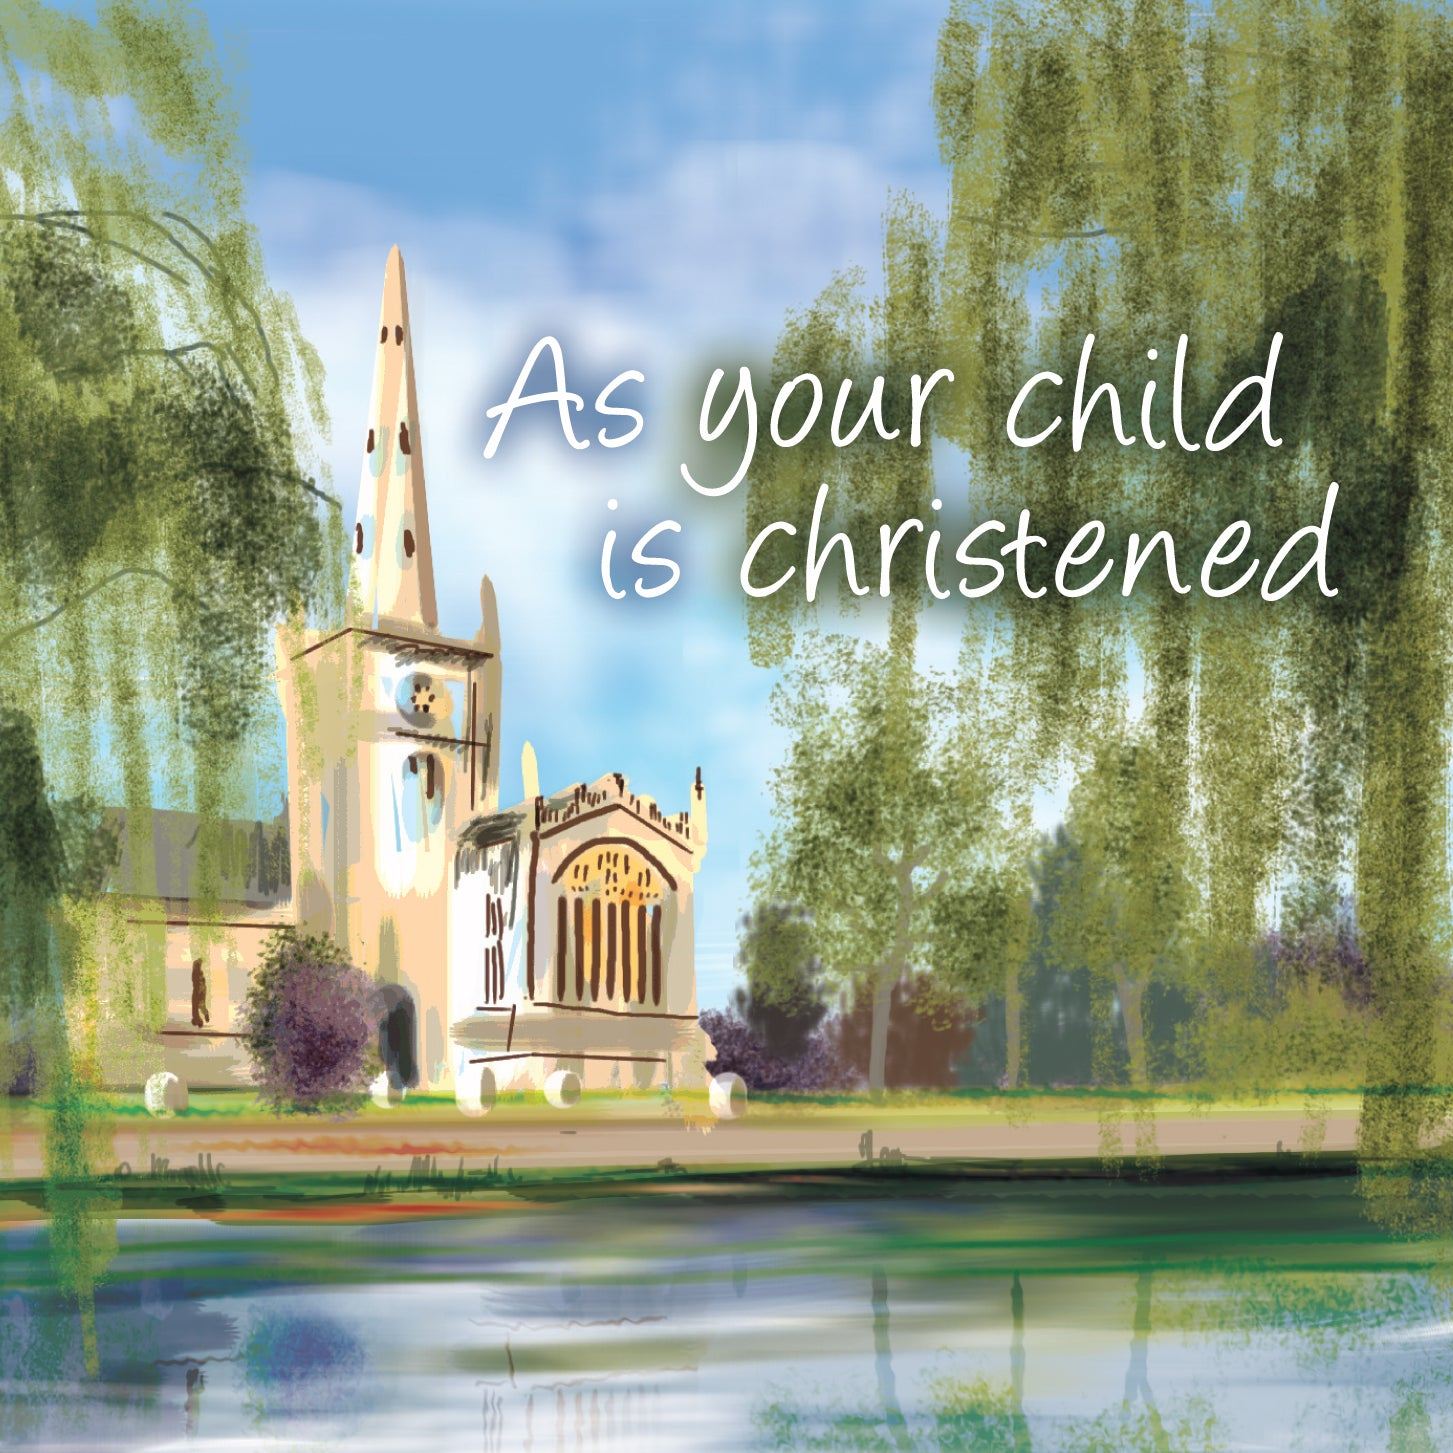 As Your Child Is Christened - Square CardAs Your Child Is Christened - Square Card